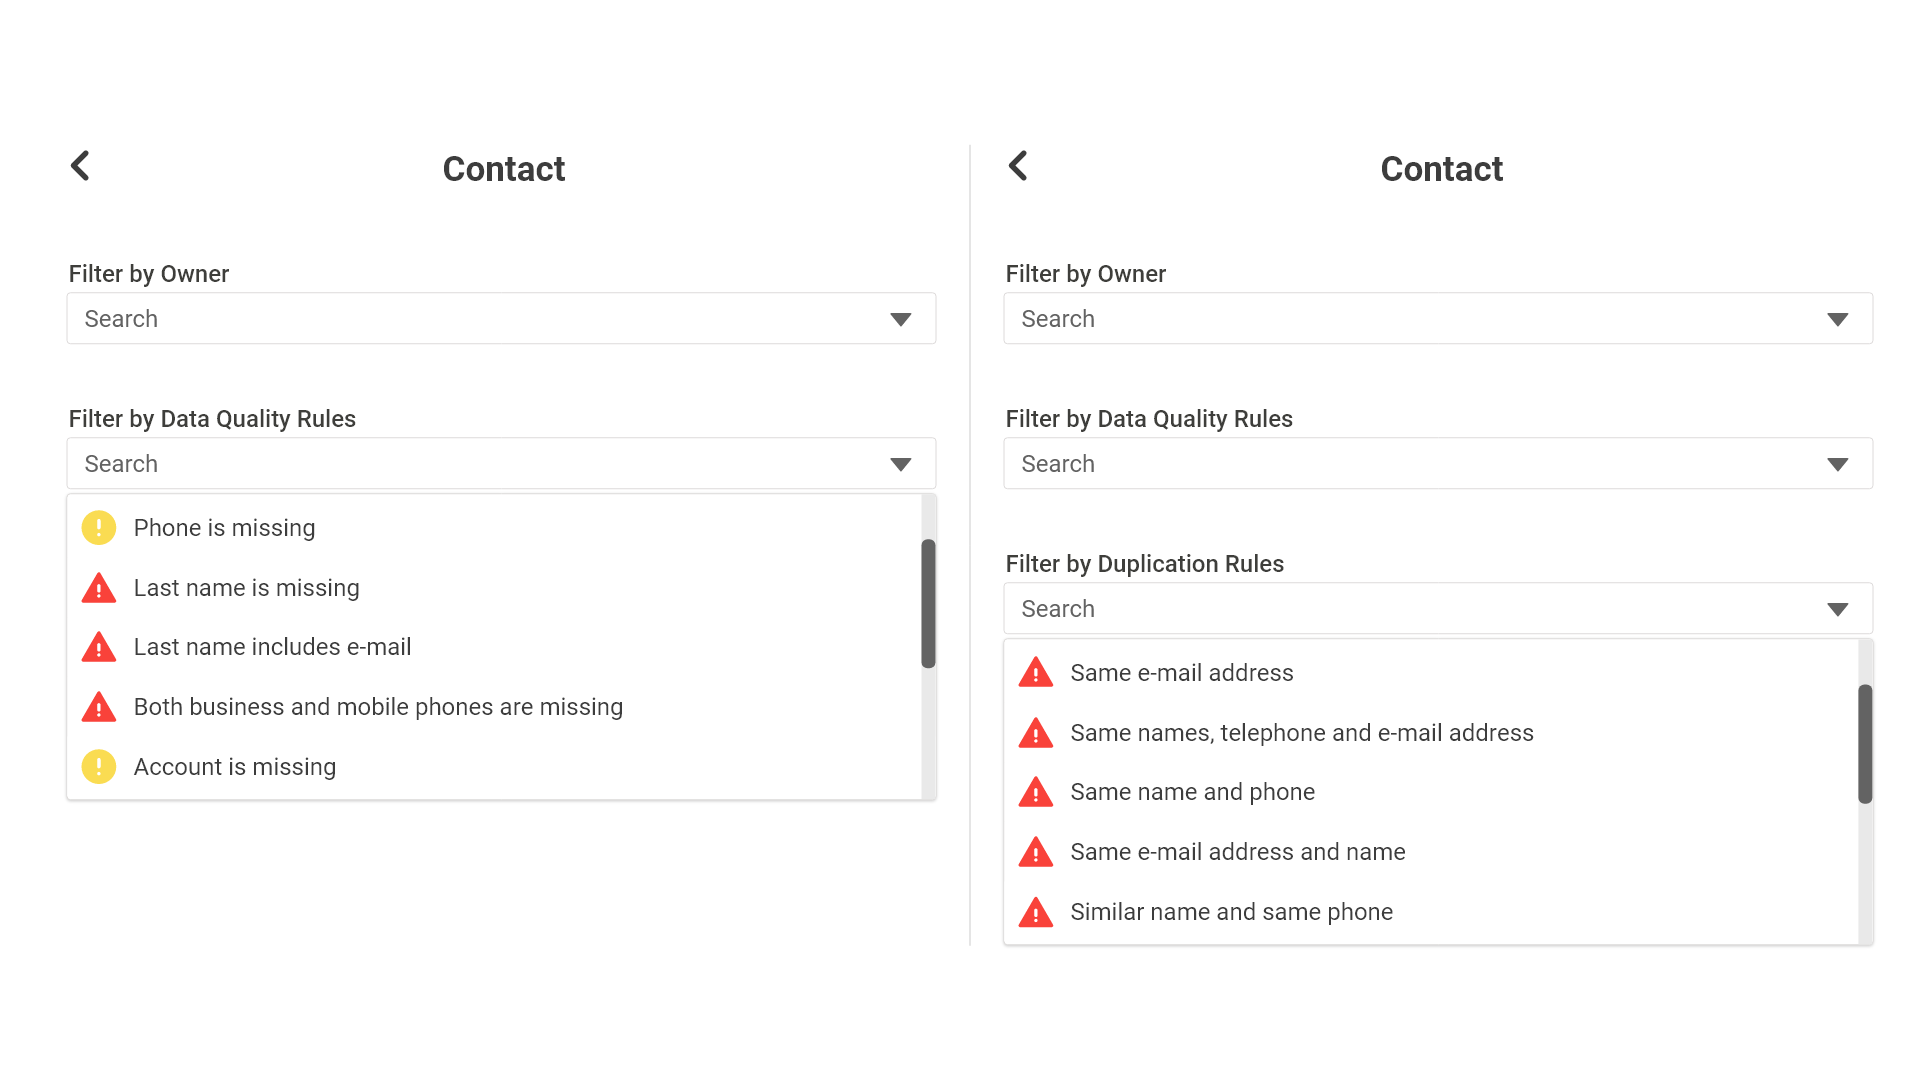 Review and remediate data quality issues straight in Dynamics 365.